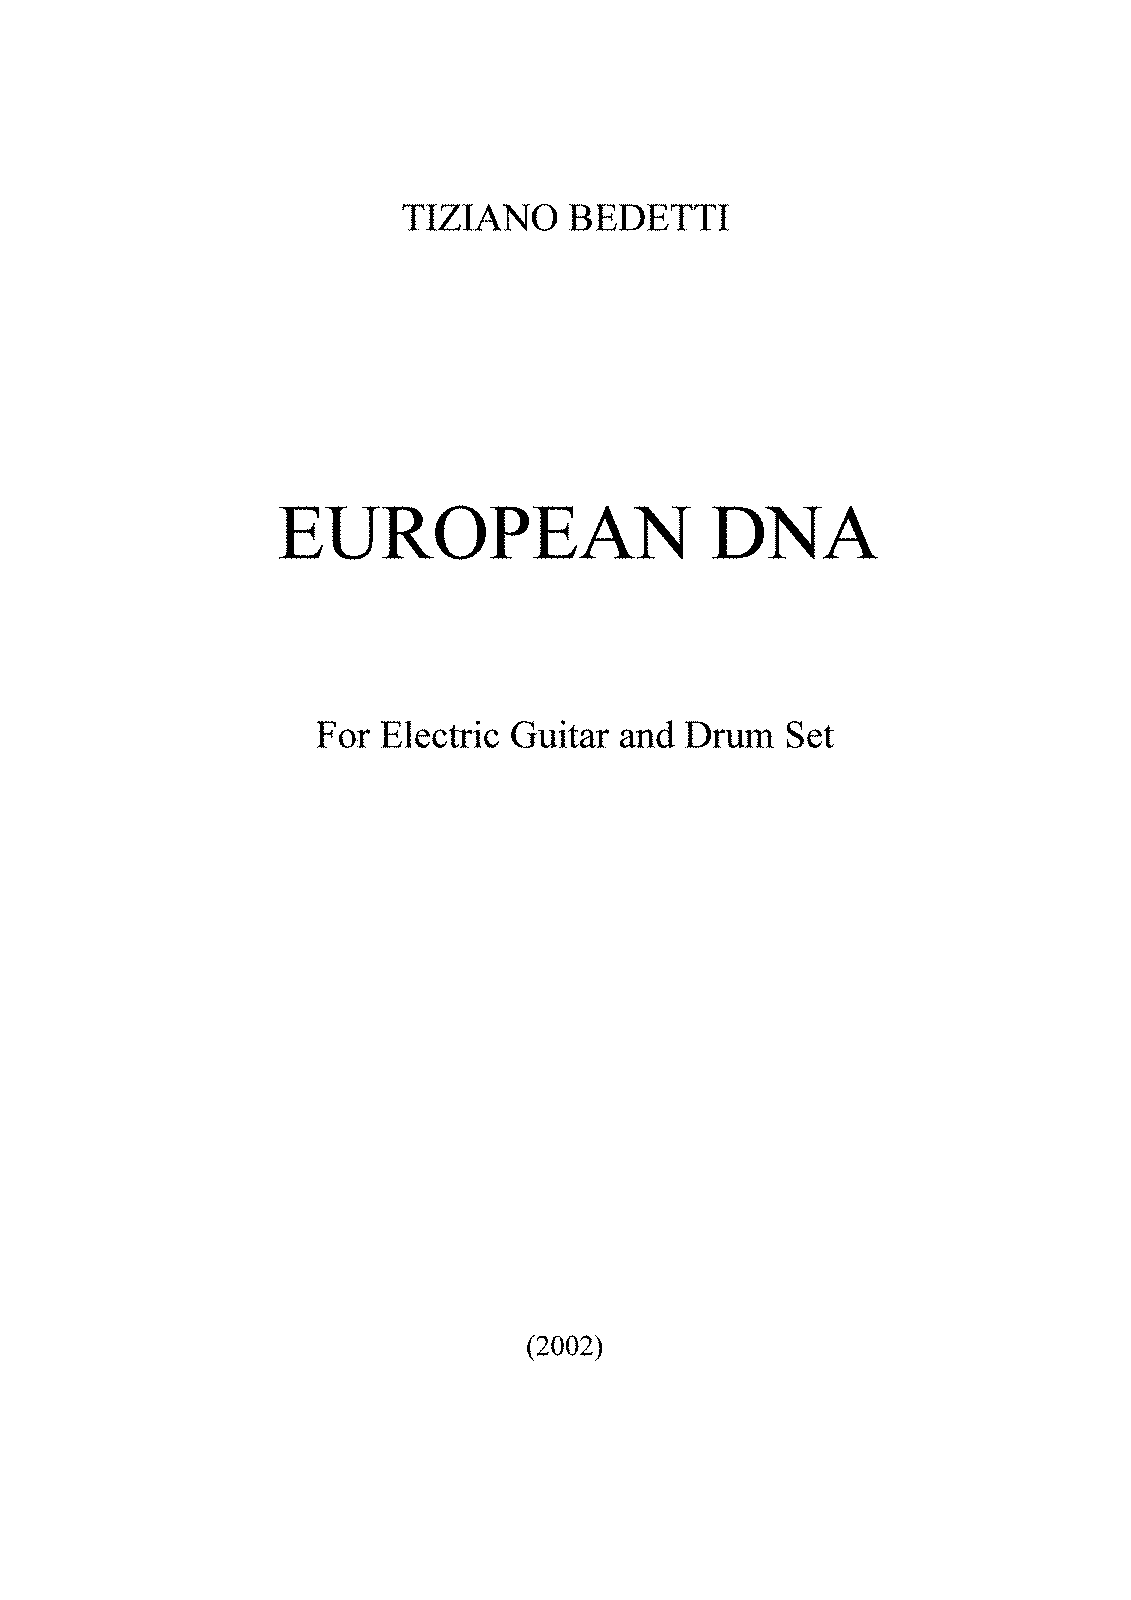 PMLP400415-Bedetti - European DNA full score.pdf